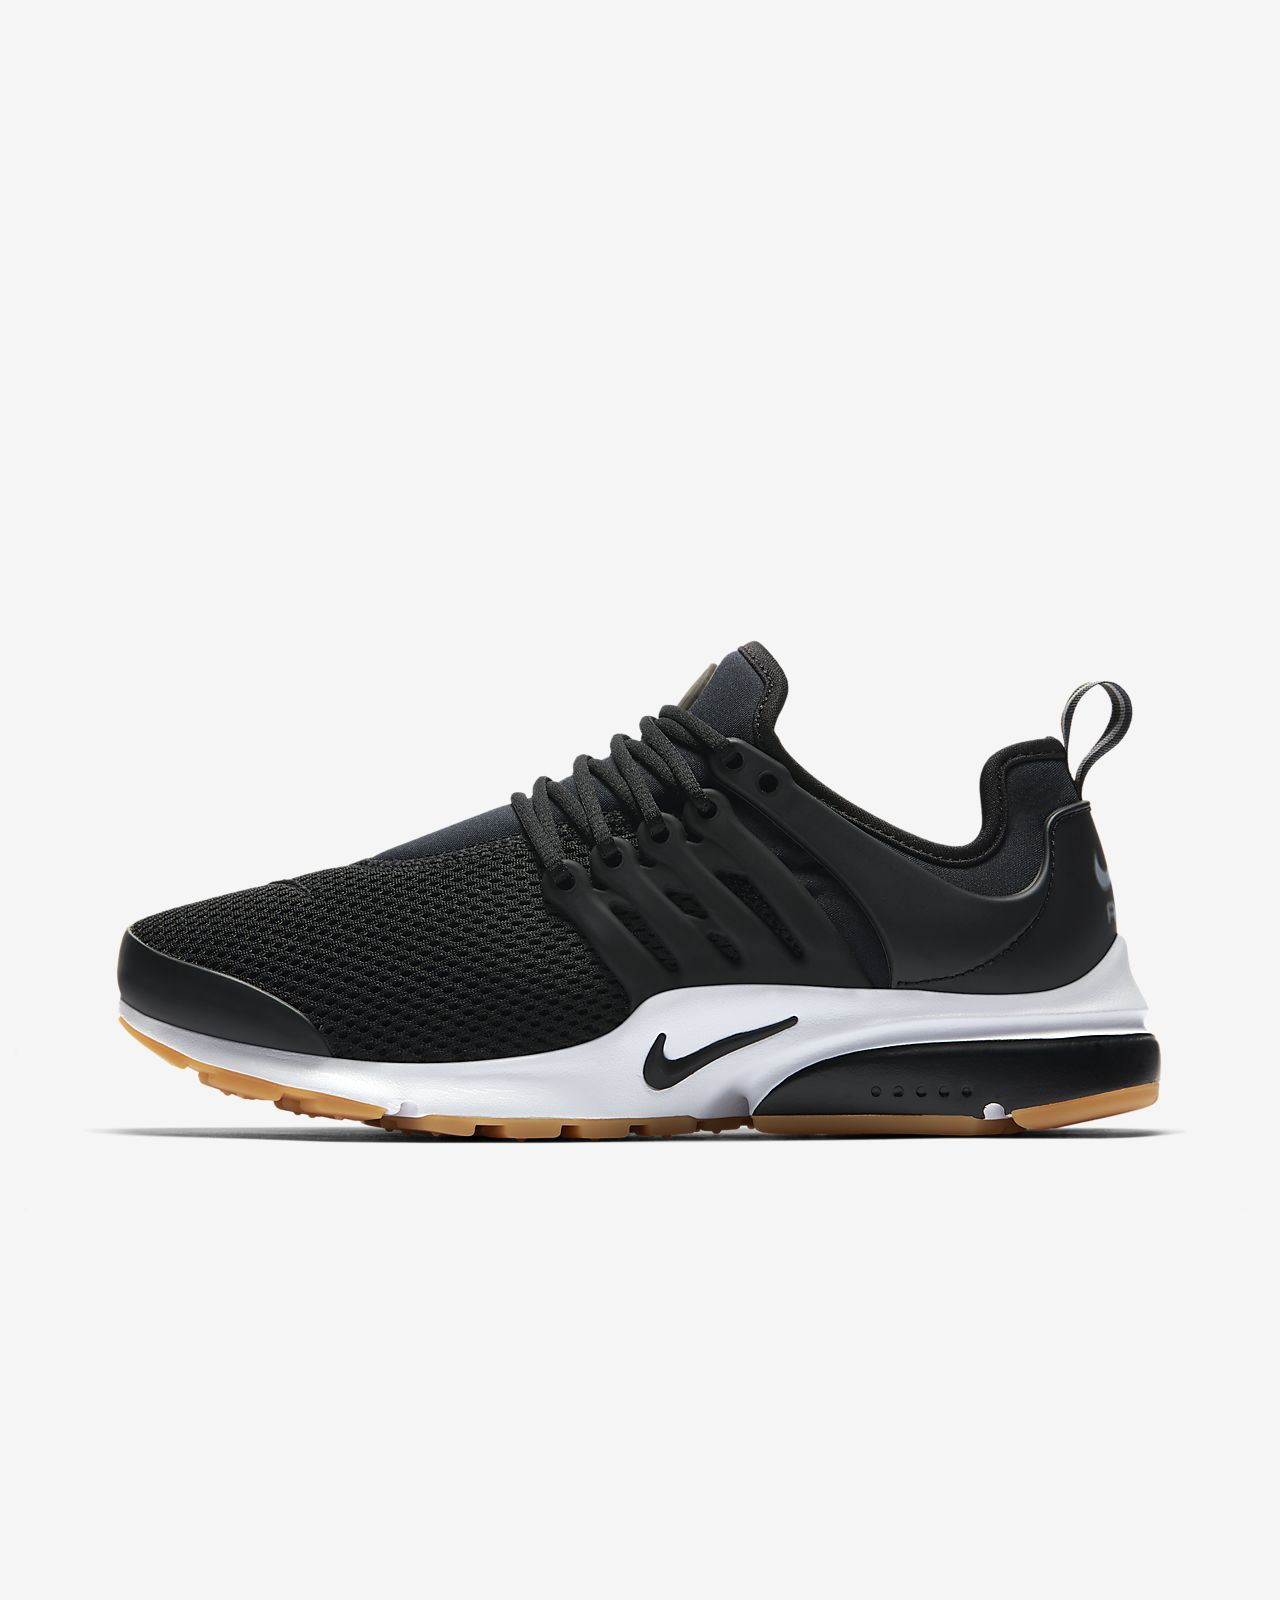 1b8720ad514139 Nike Air Presto Women s Shoe. Nike.com